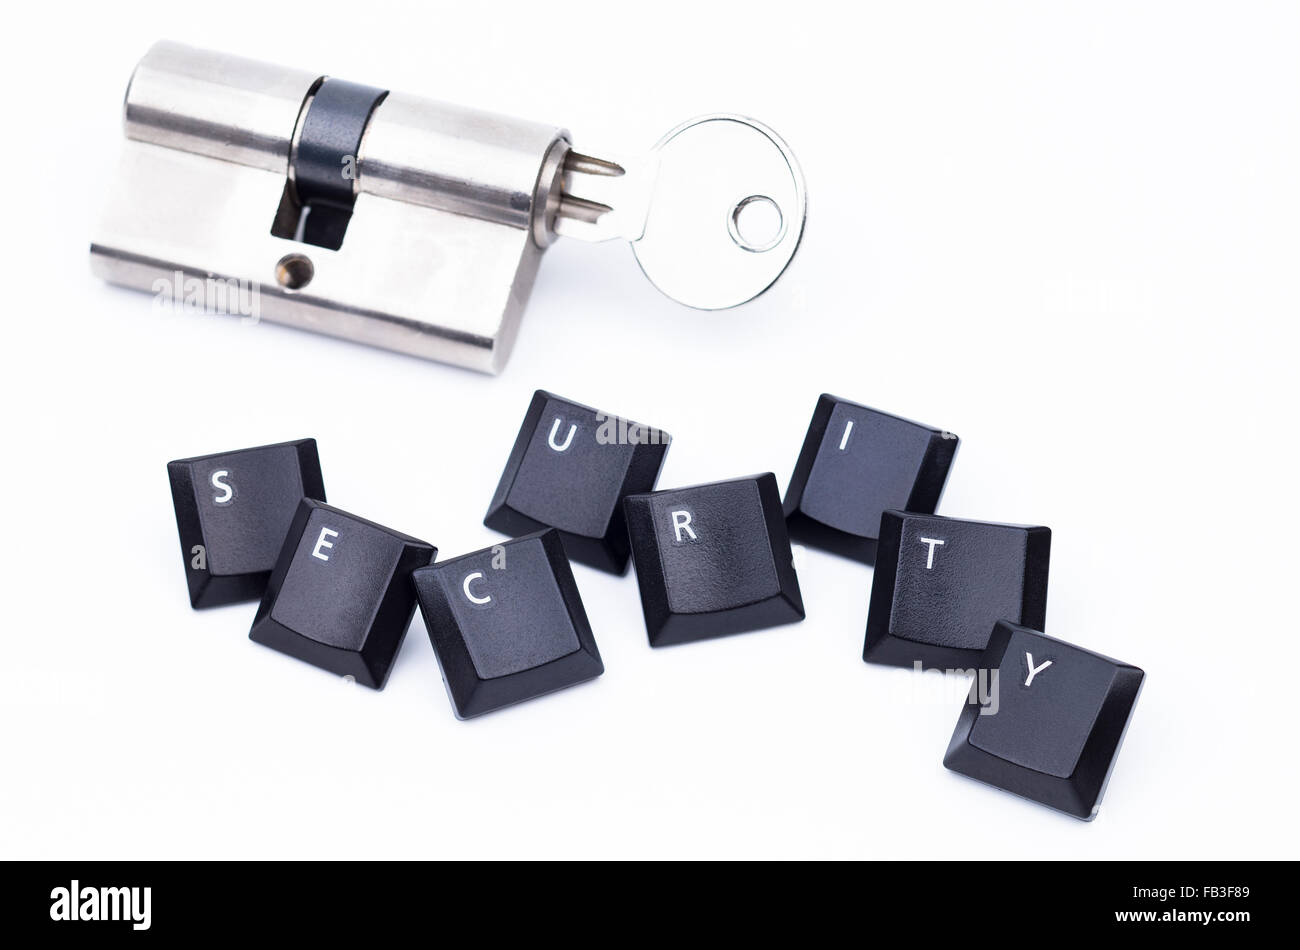 Image shows shows keys with the word security and a key lock - Stock Image